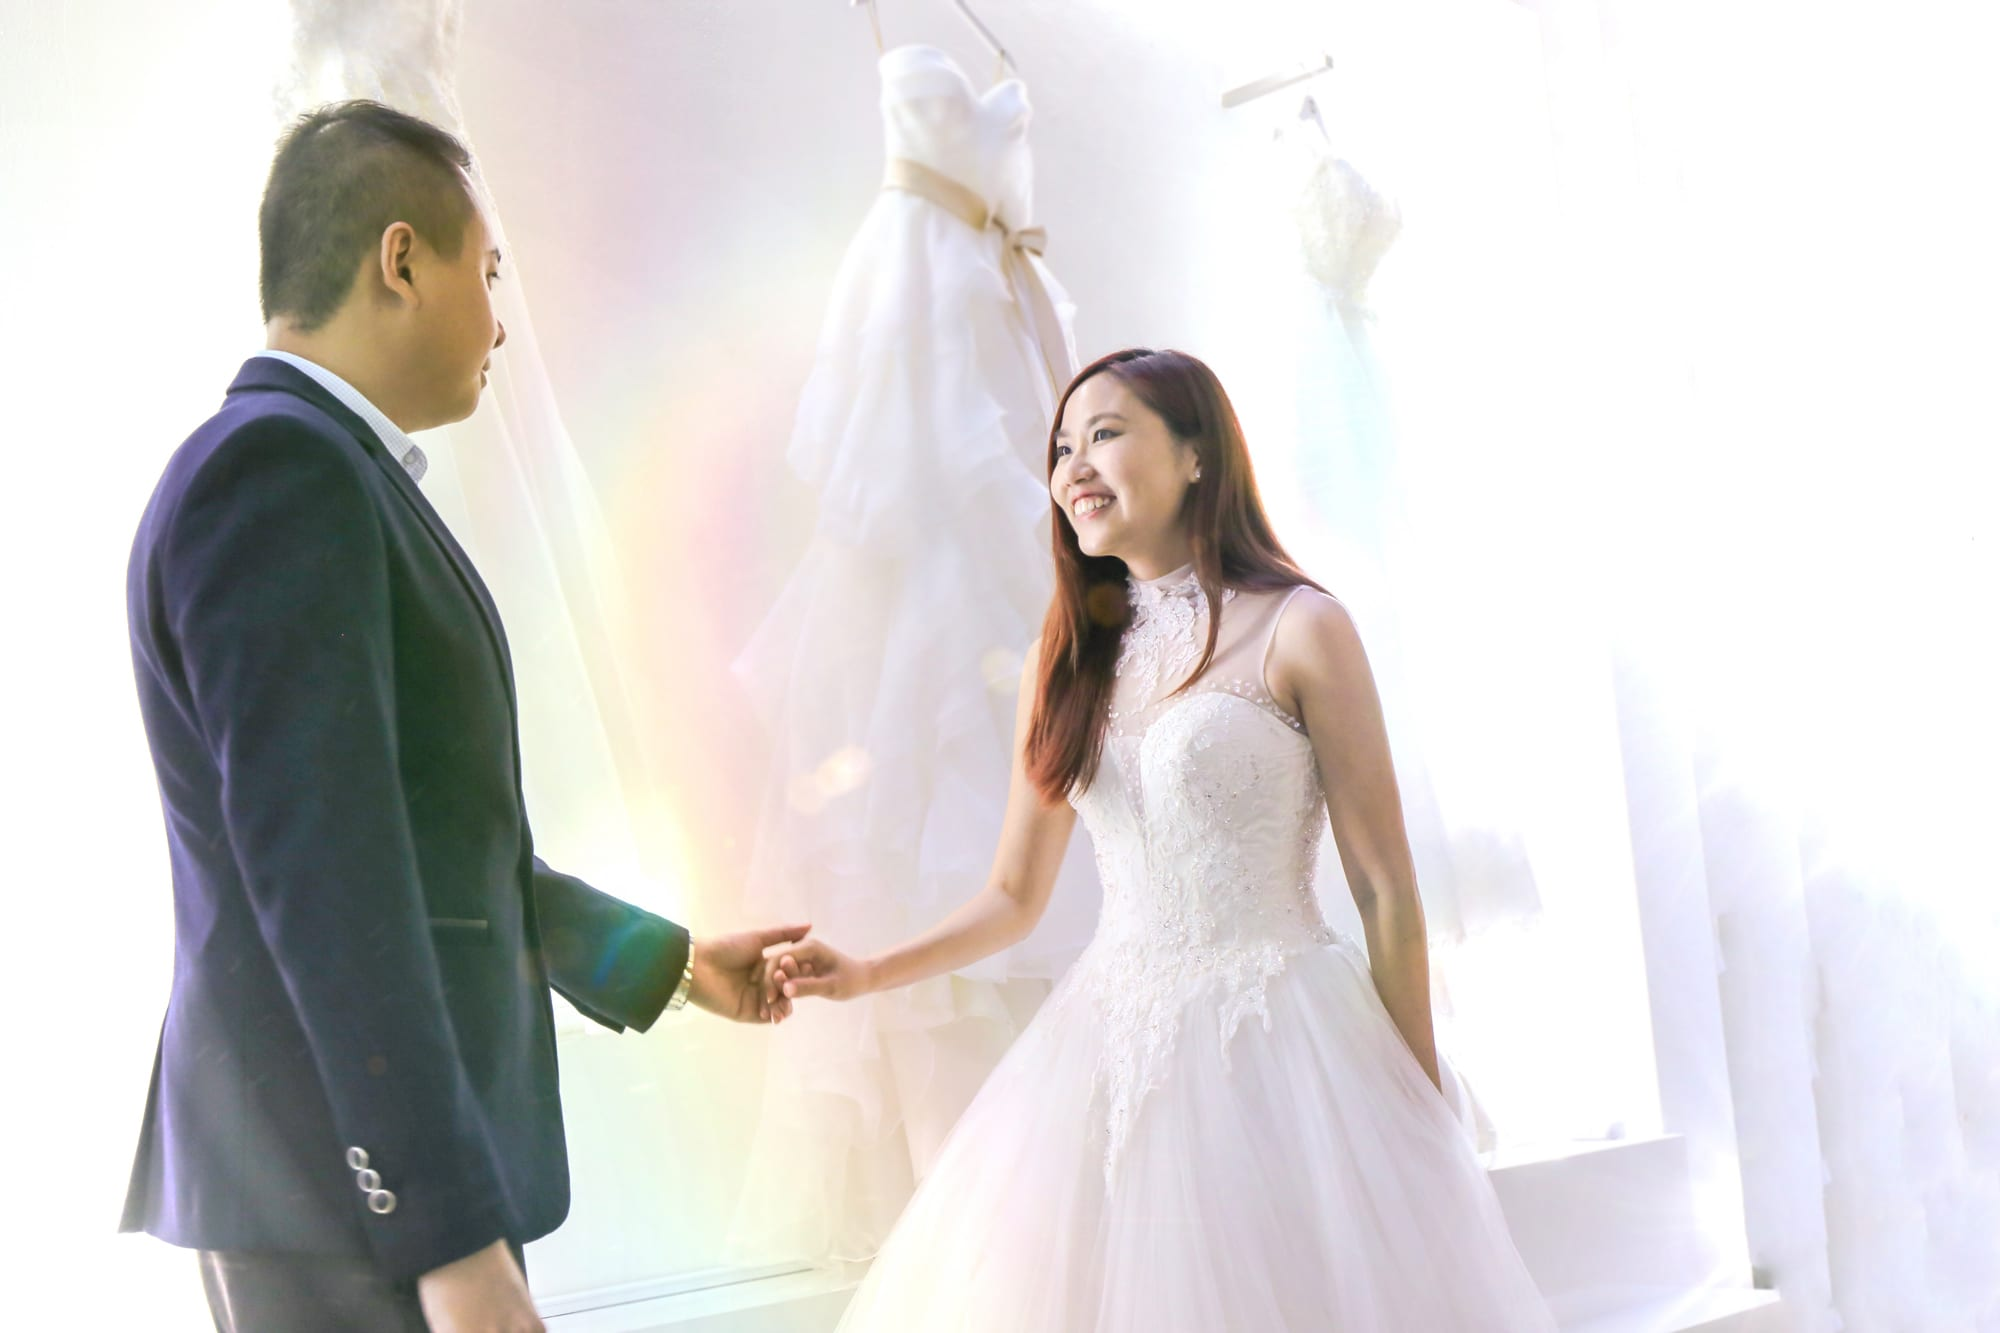 Wedding Gown Fitting Experience for Celebrity Si Tong